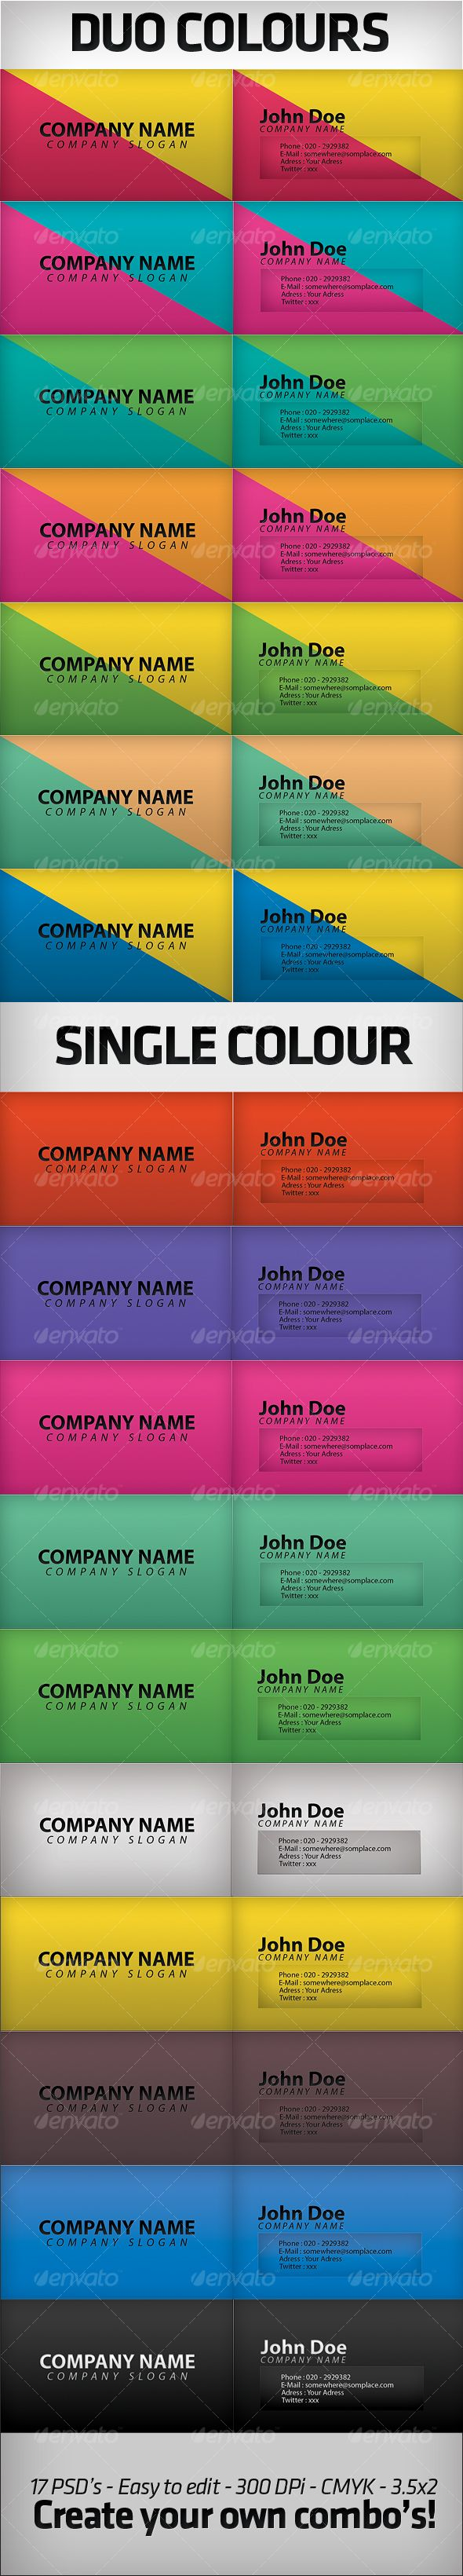 68 best Business Card Design images on Pinterest | Business cards ...